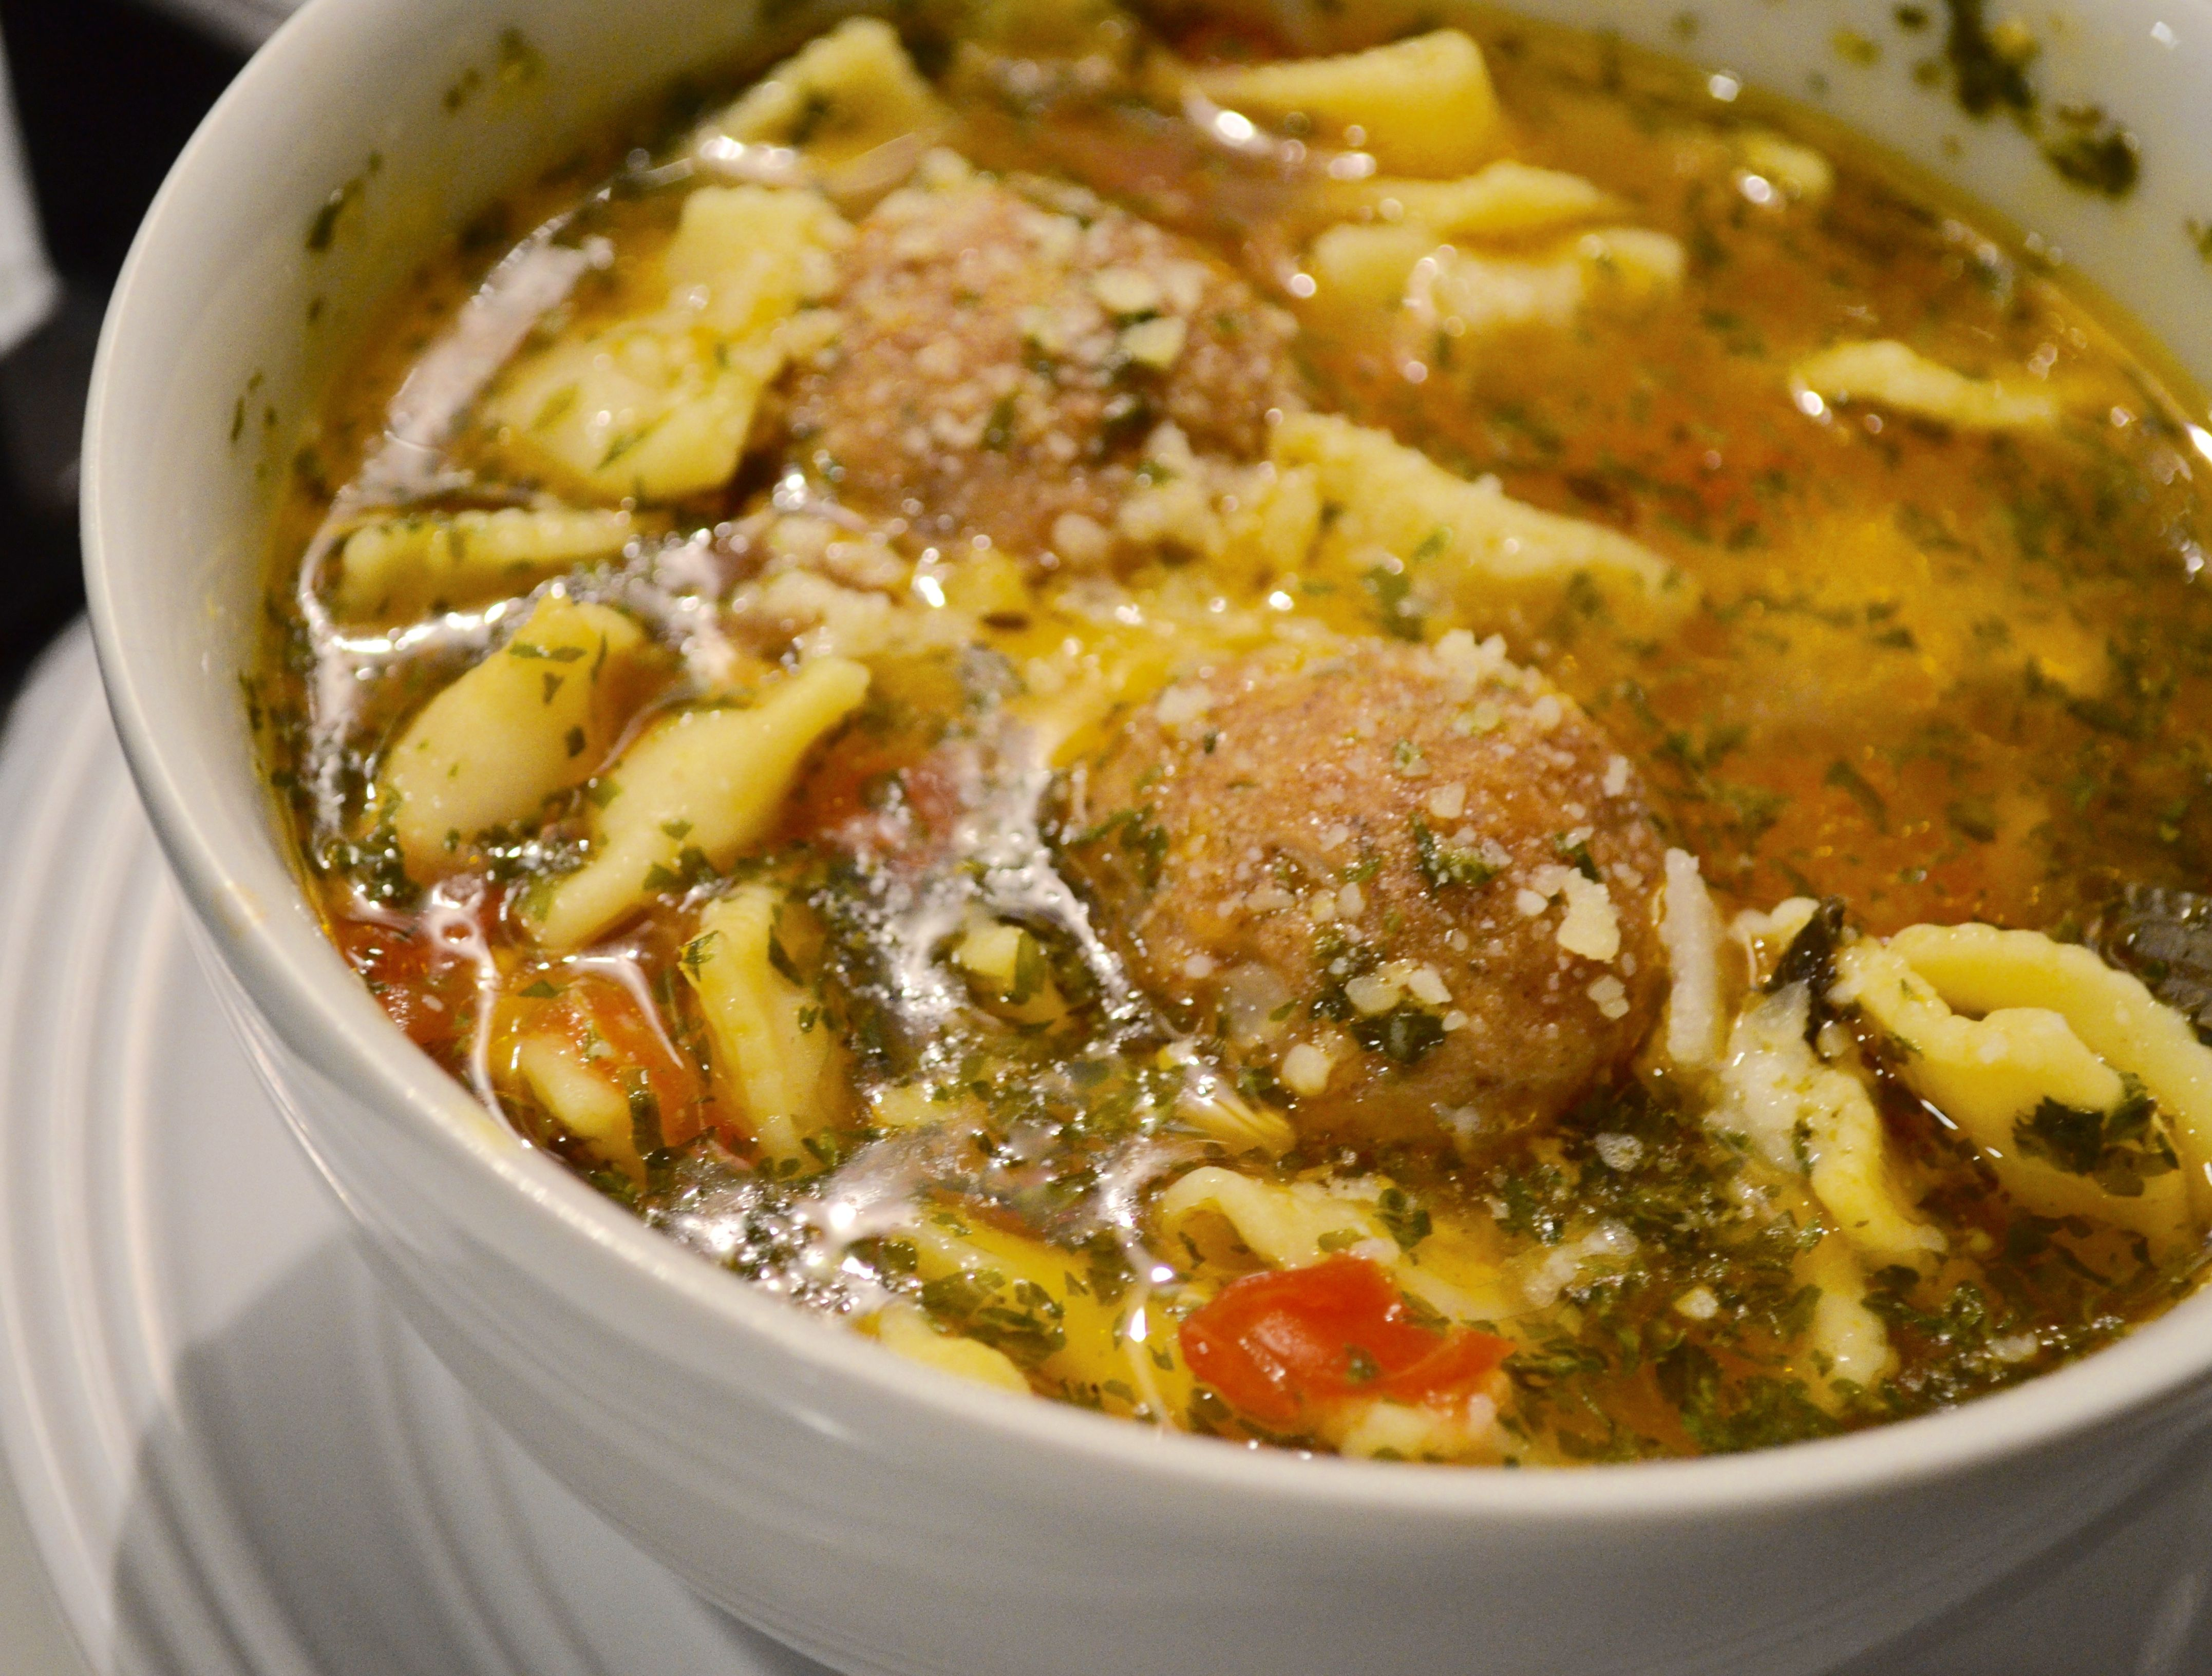 Meatball ravioli soup recipe halal recipes food industry and cuisine forumfinder Gallery